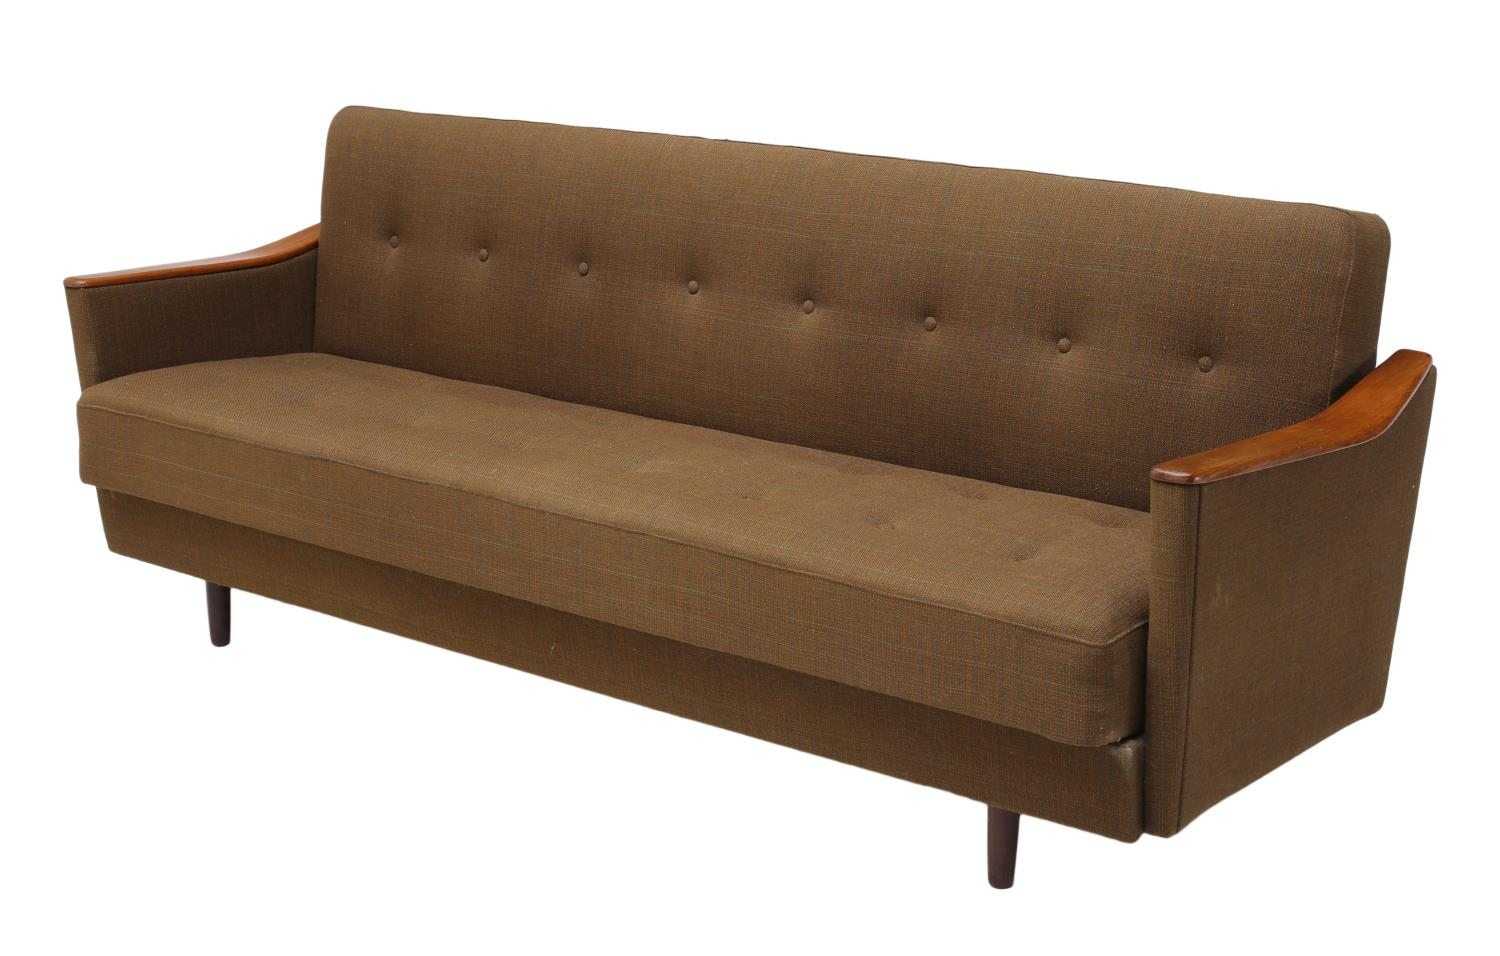 Midcentury Modern Sofa Bed Danish Mid Century Modern Teak Sleeper Sofa Bed June